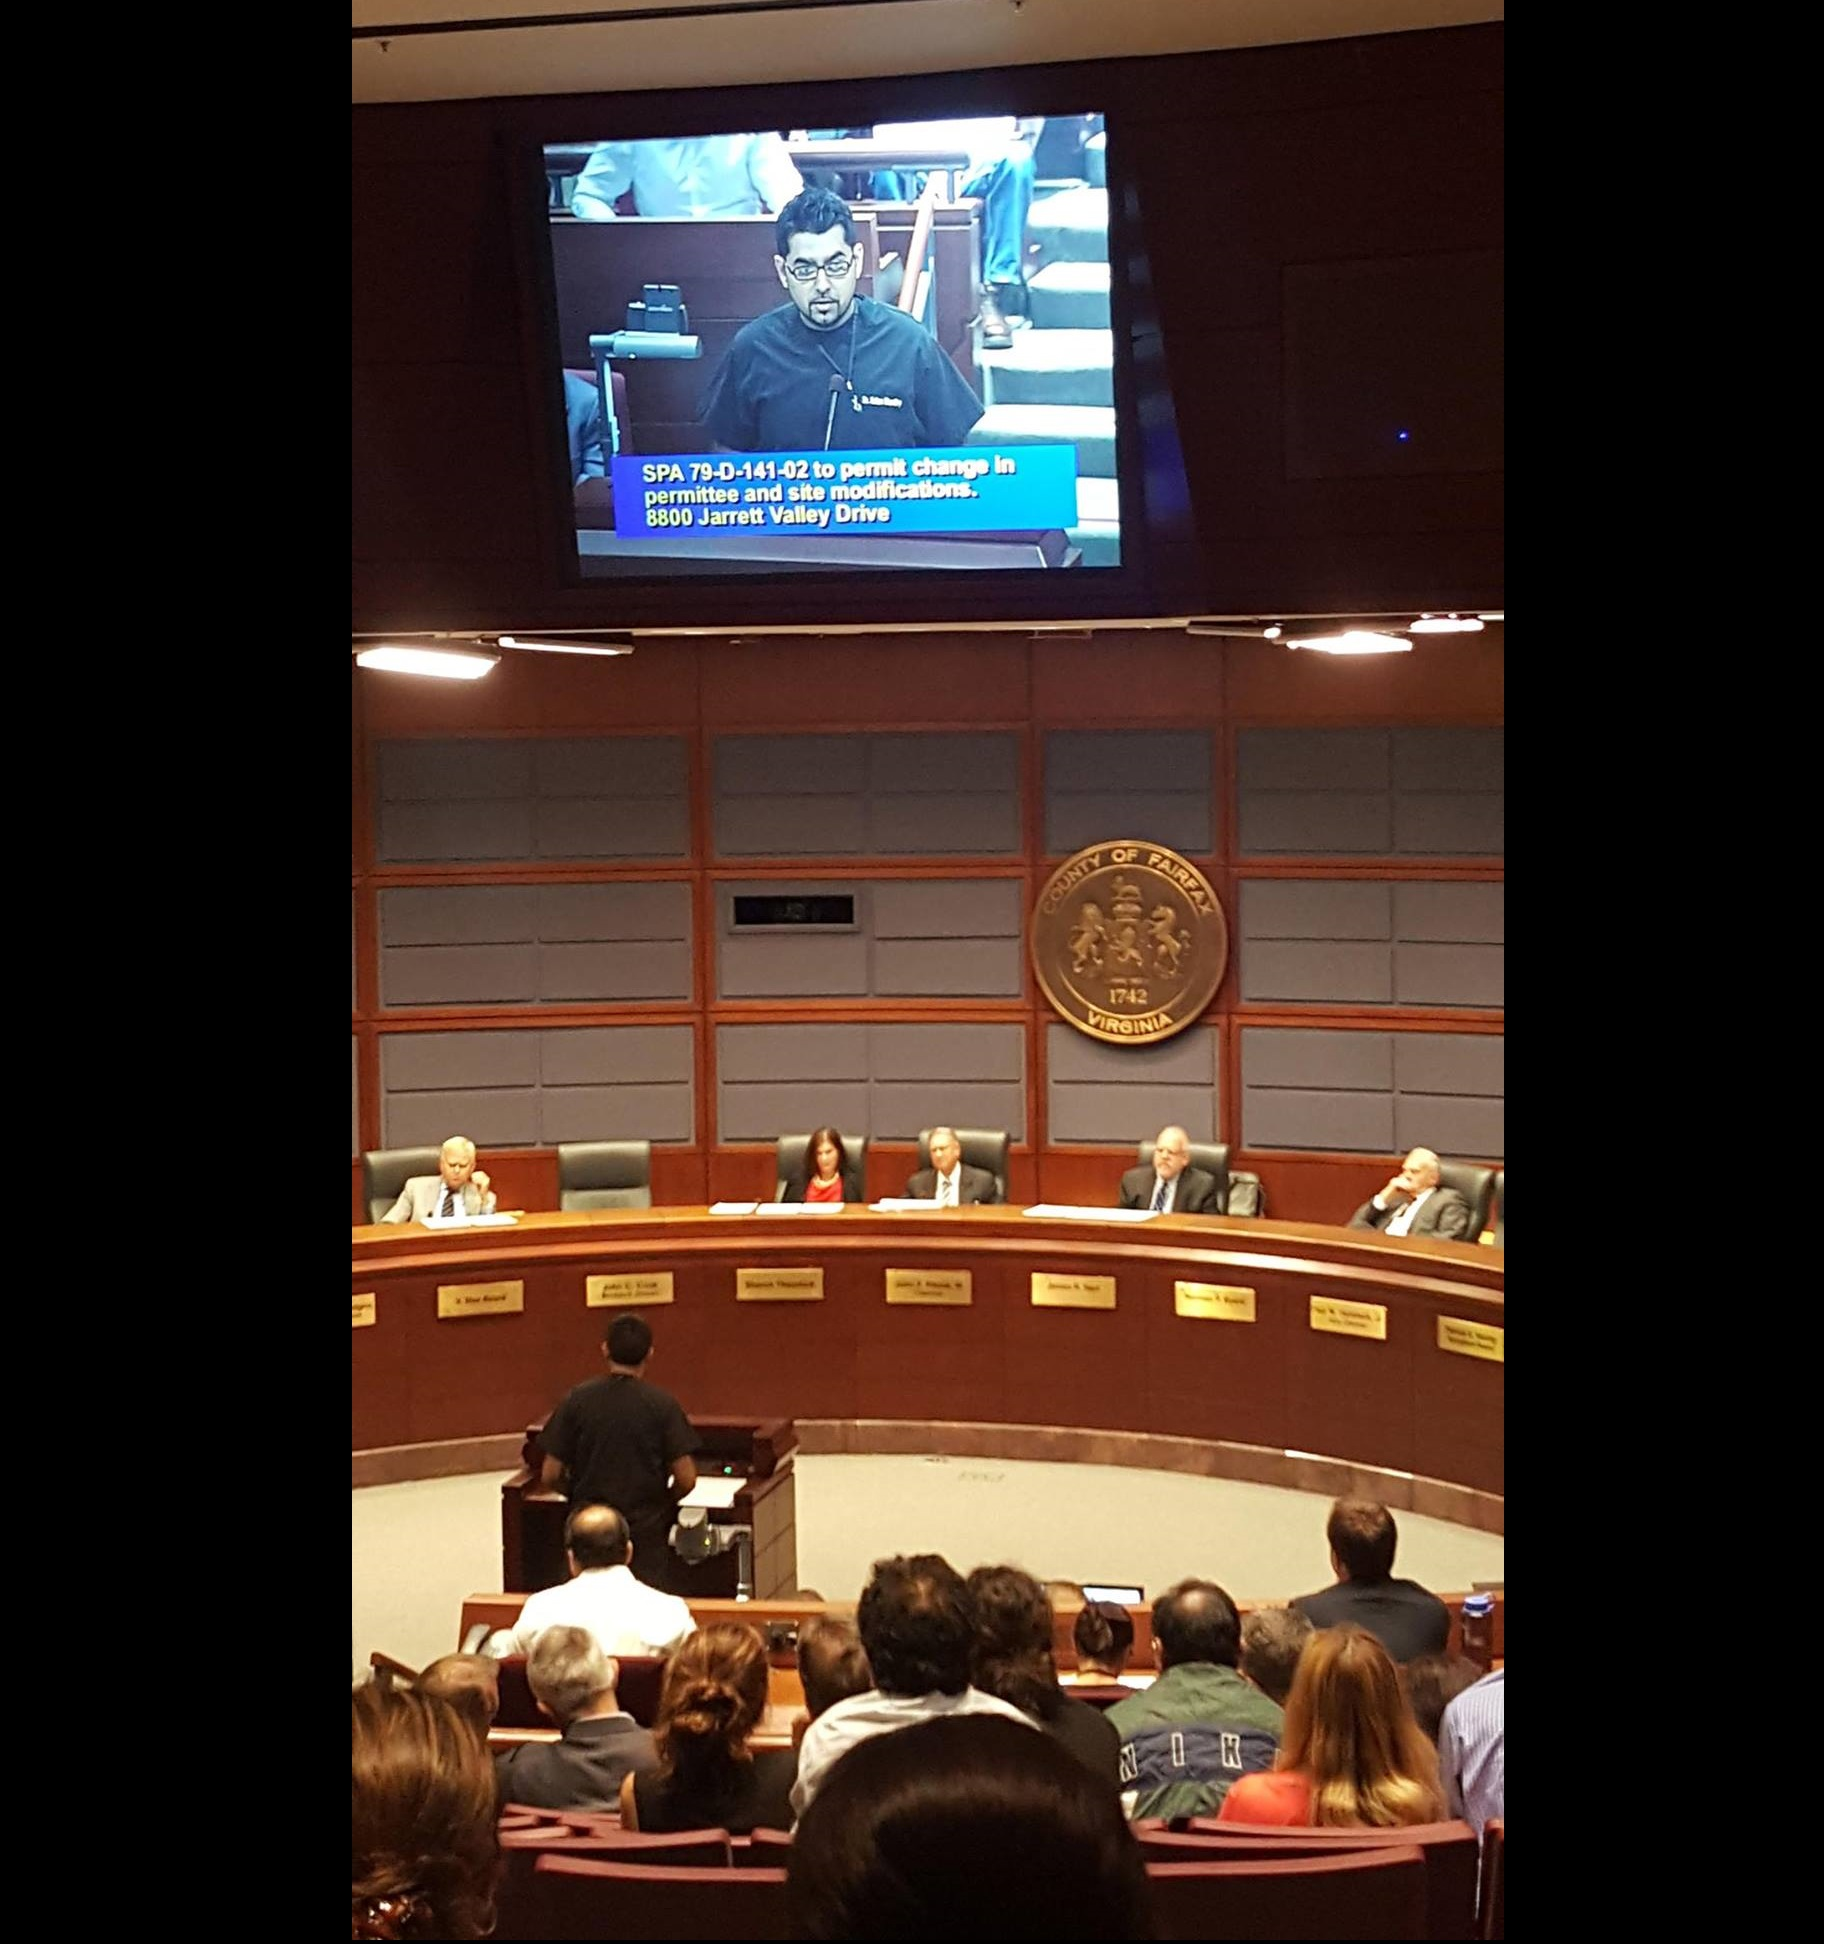 Dr. Chaudhry presenting before Fairfax County officials